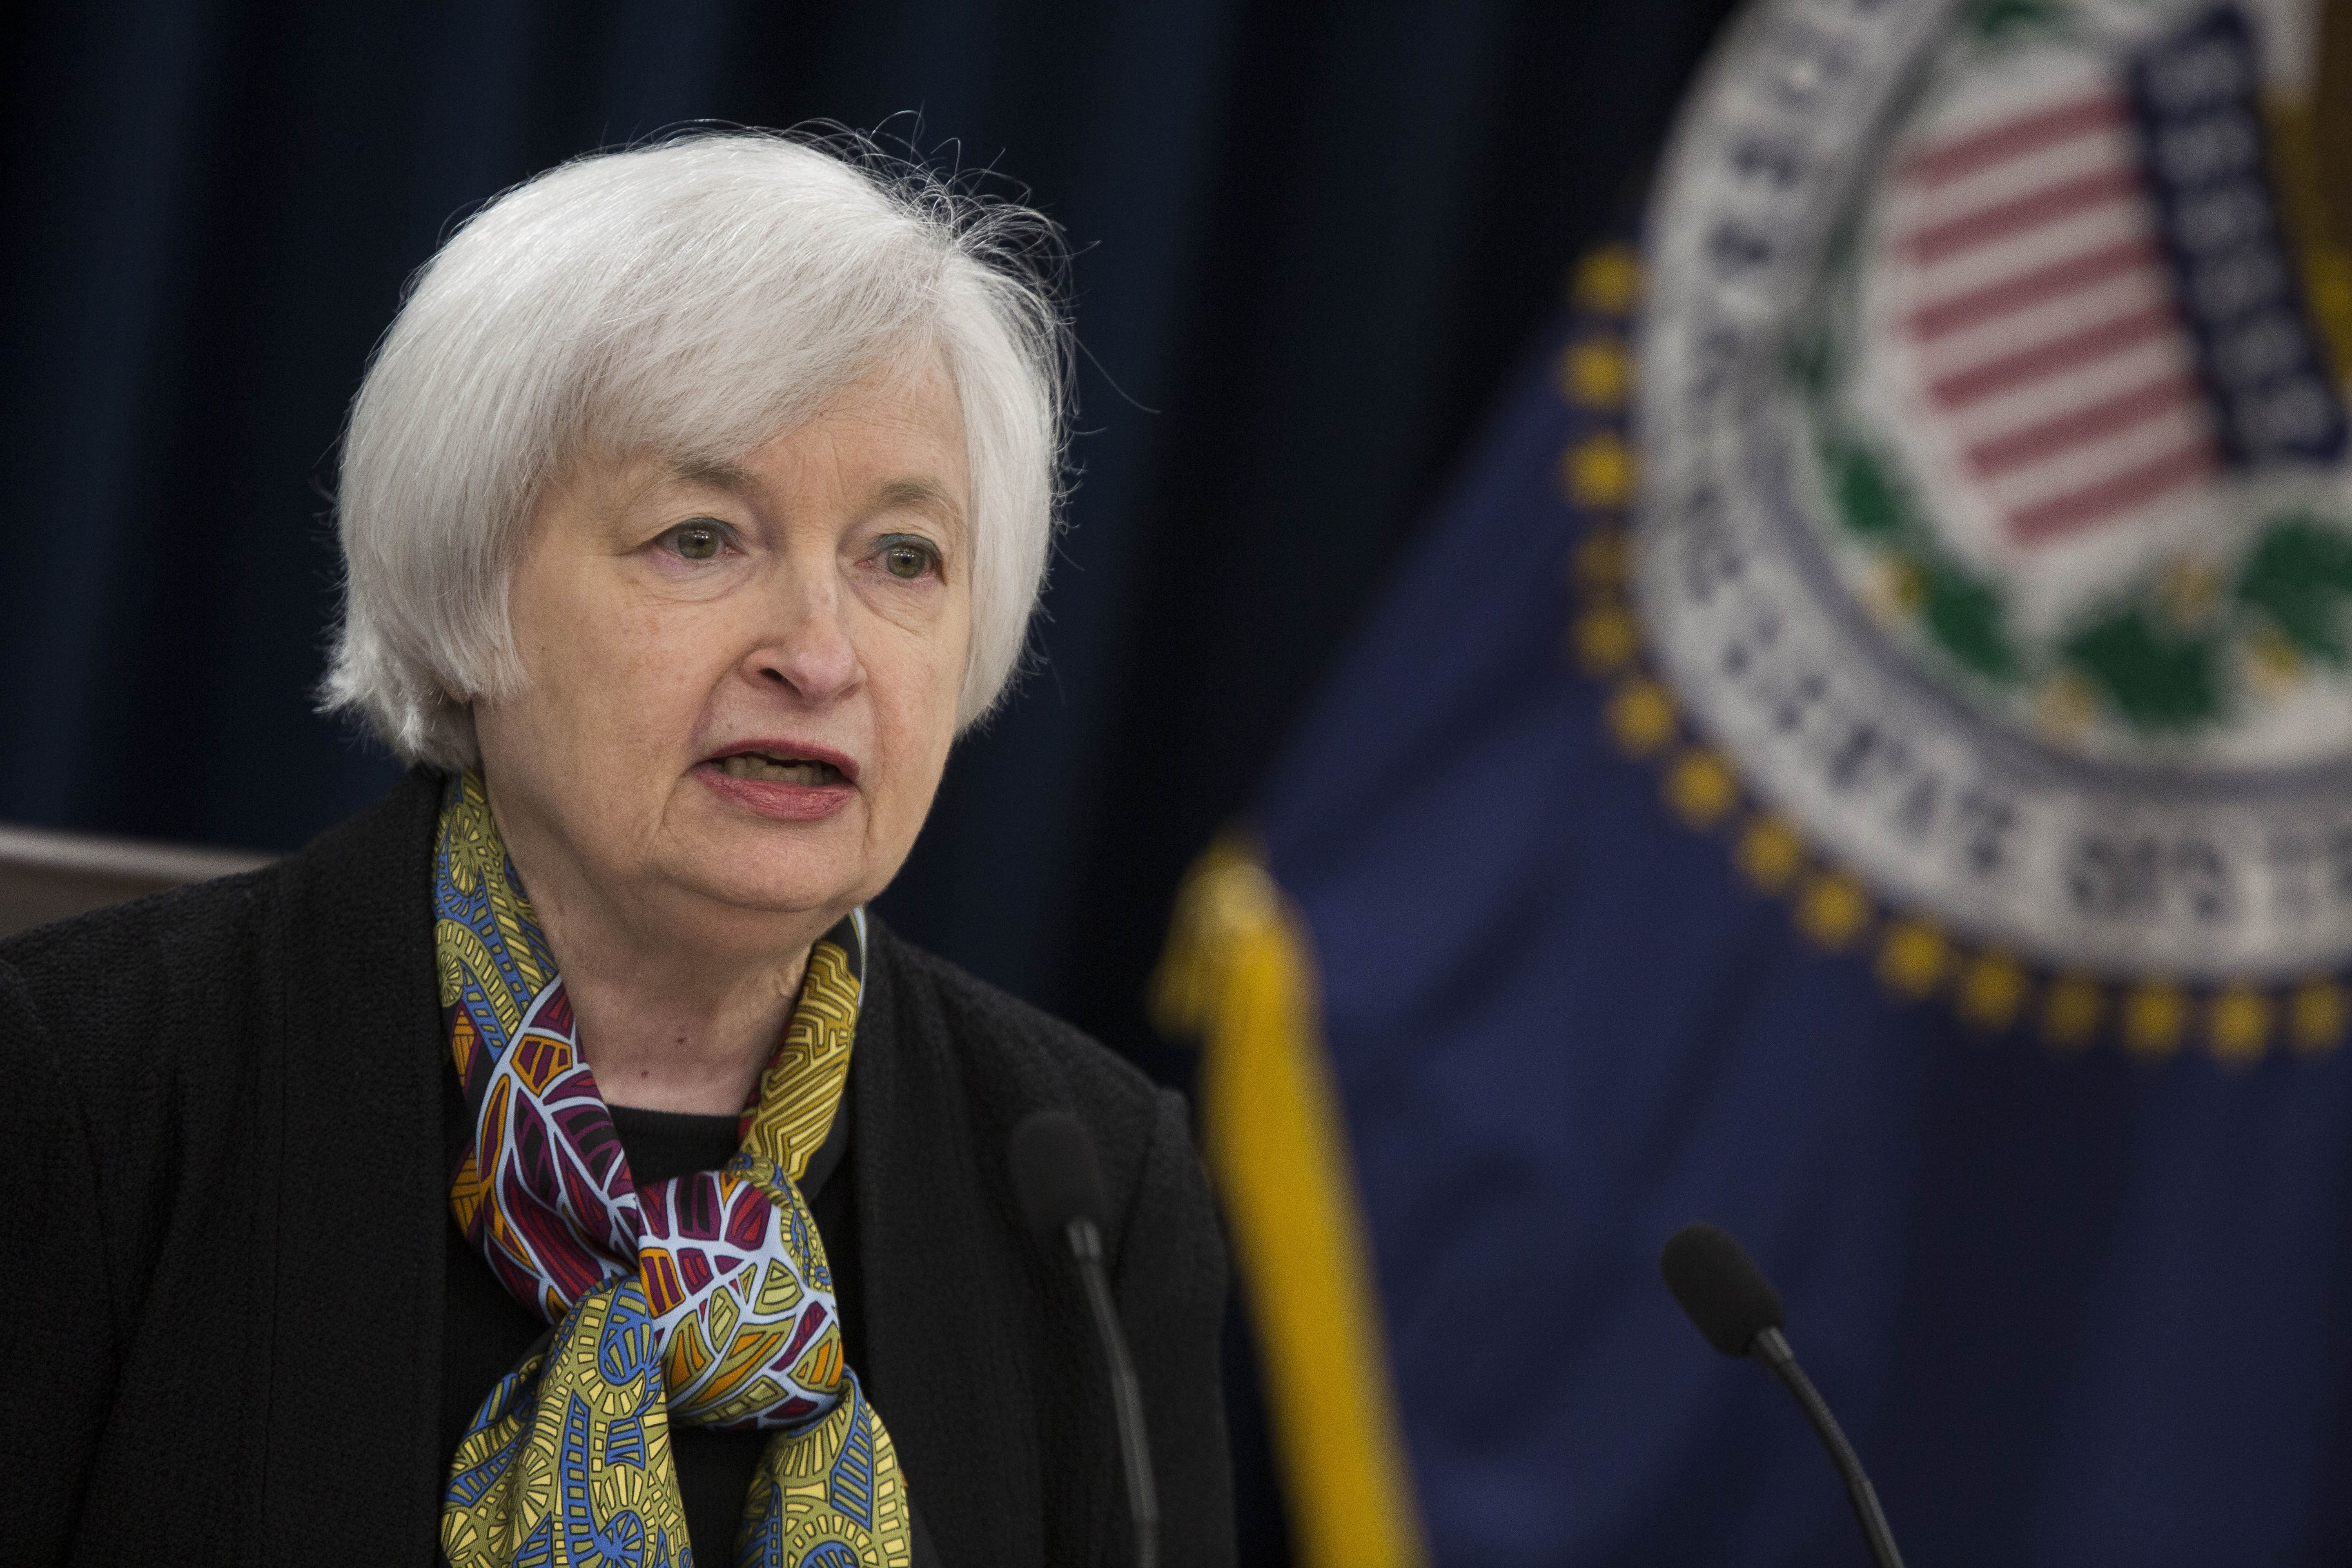 Janet Yellen, chair of the U.S. Federal Reserve, speaks during a news conference following a Federal Open Market Committee (FOMC) meeting in Washington, D.C., U.S., on Wednesday, March 16, 2016. Federal Reserve officials held off from raising borrowing costs and scaled back forecasts for how high interest rates will rise this year, citing the potential impact from weaker global growth and financial-market turmoil on the U.S. economy. Photographer: Drew Angerer/Bloomberg via Getty Images